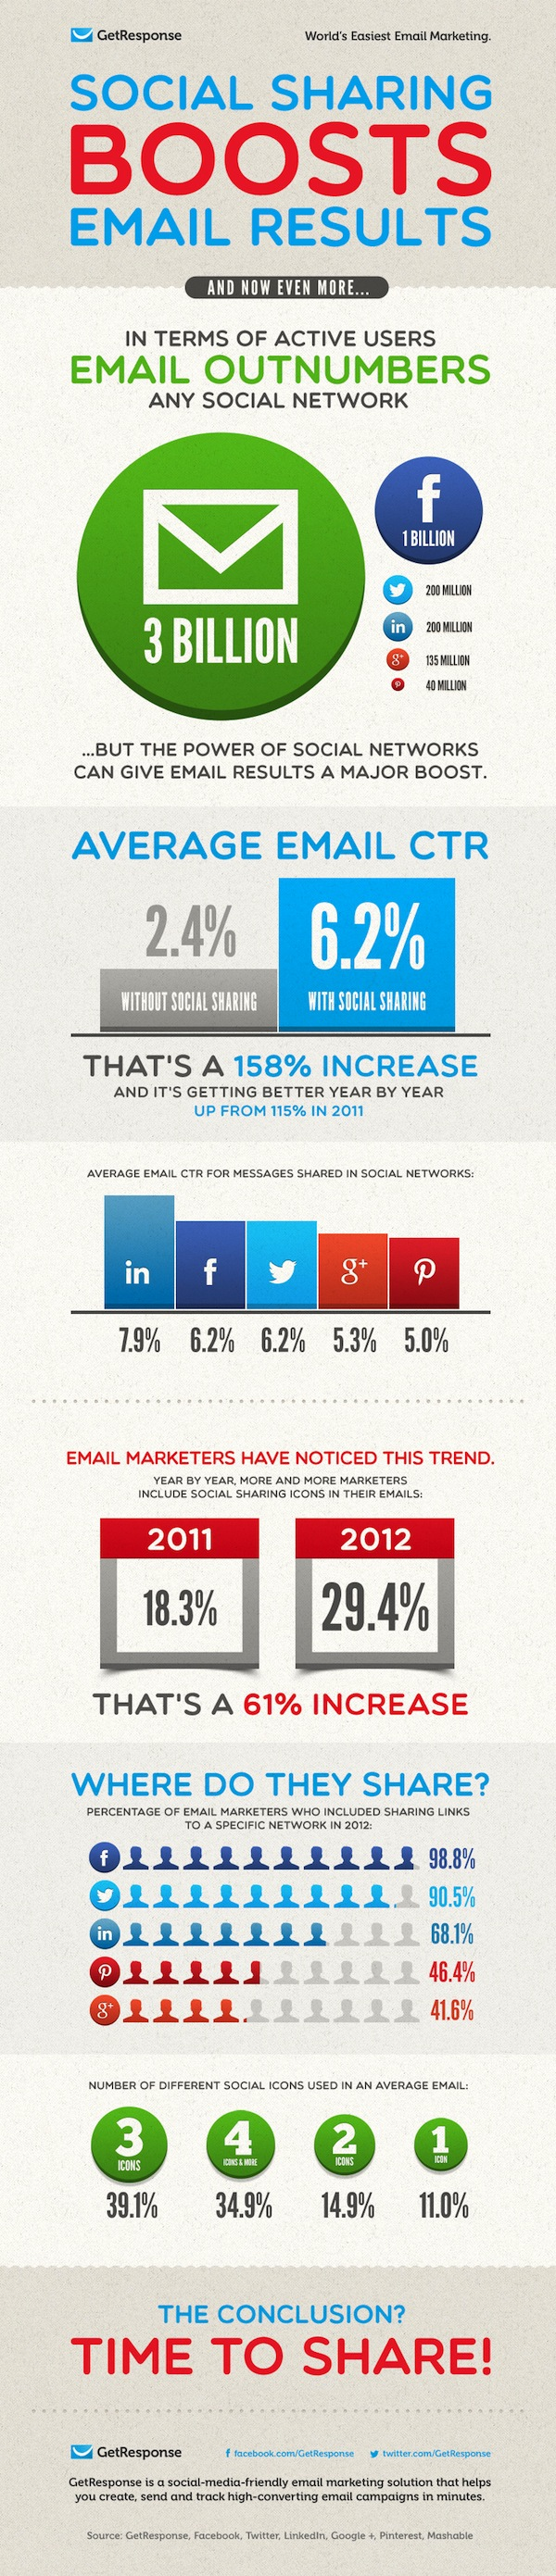 email marketing social sharing infographic